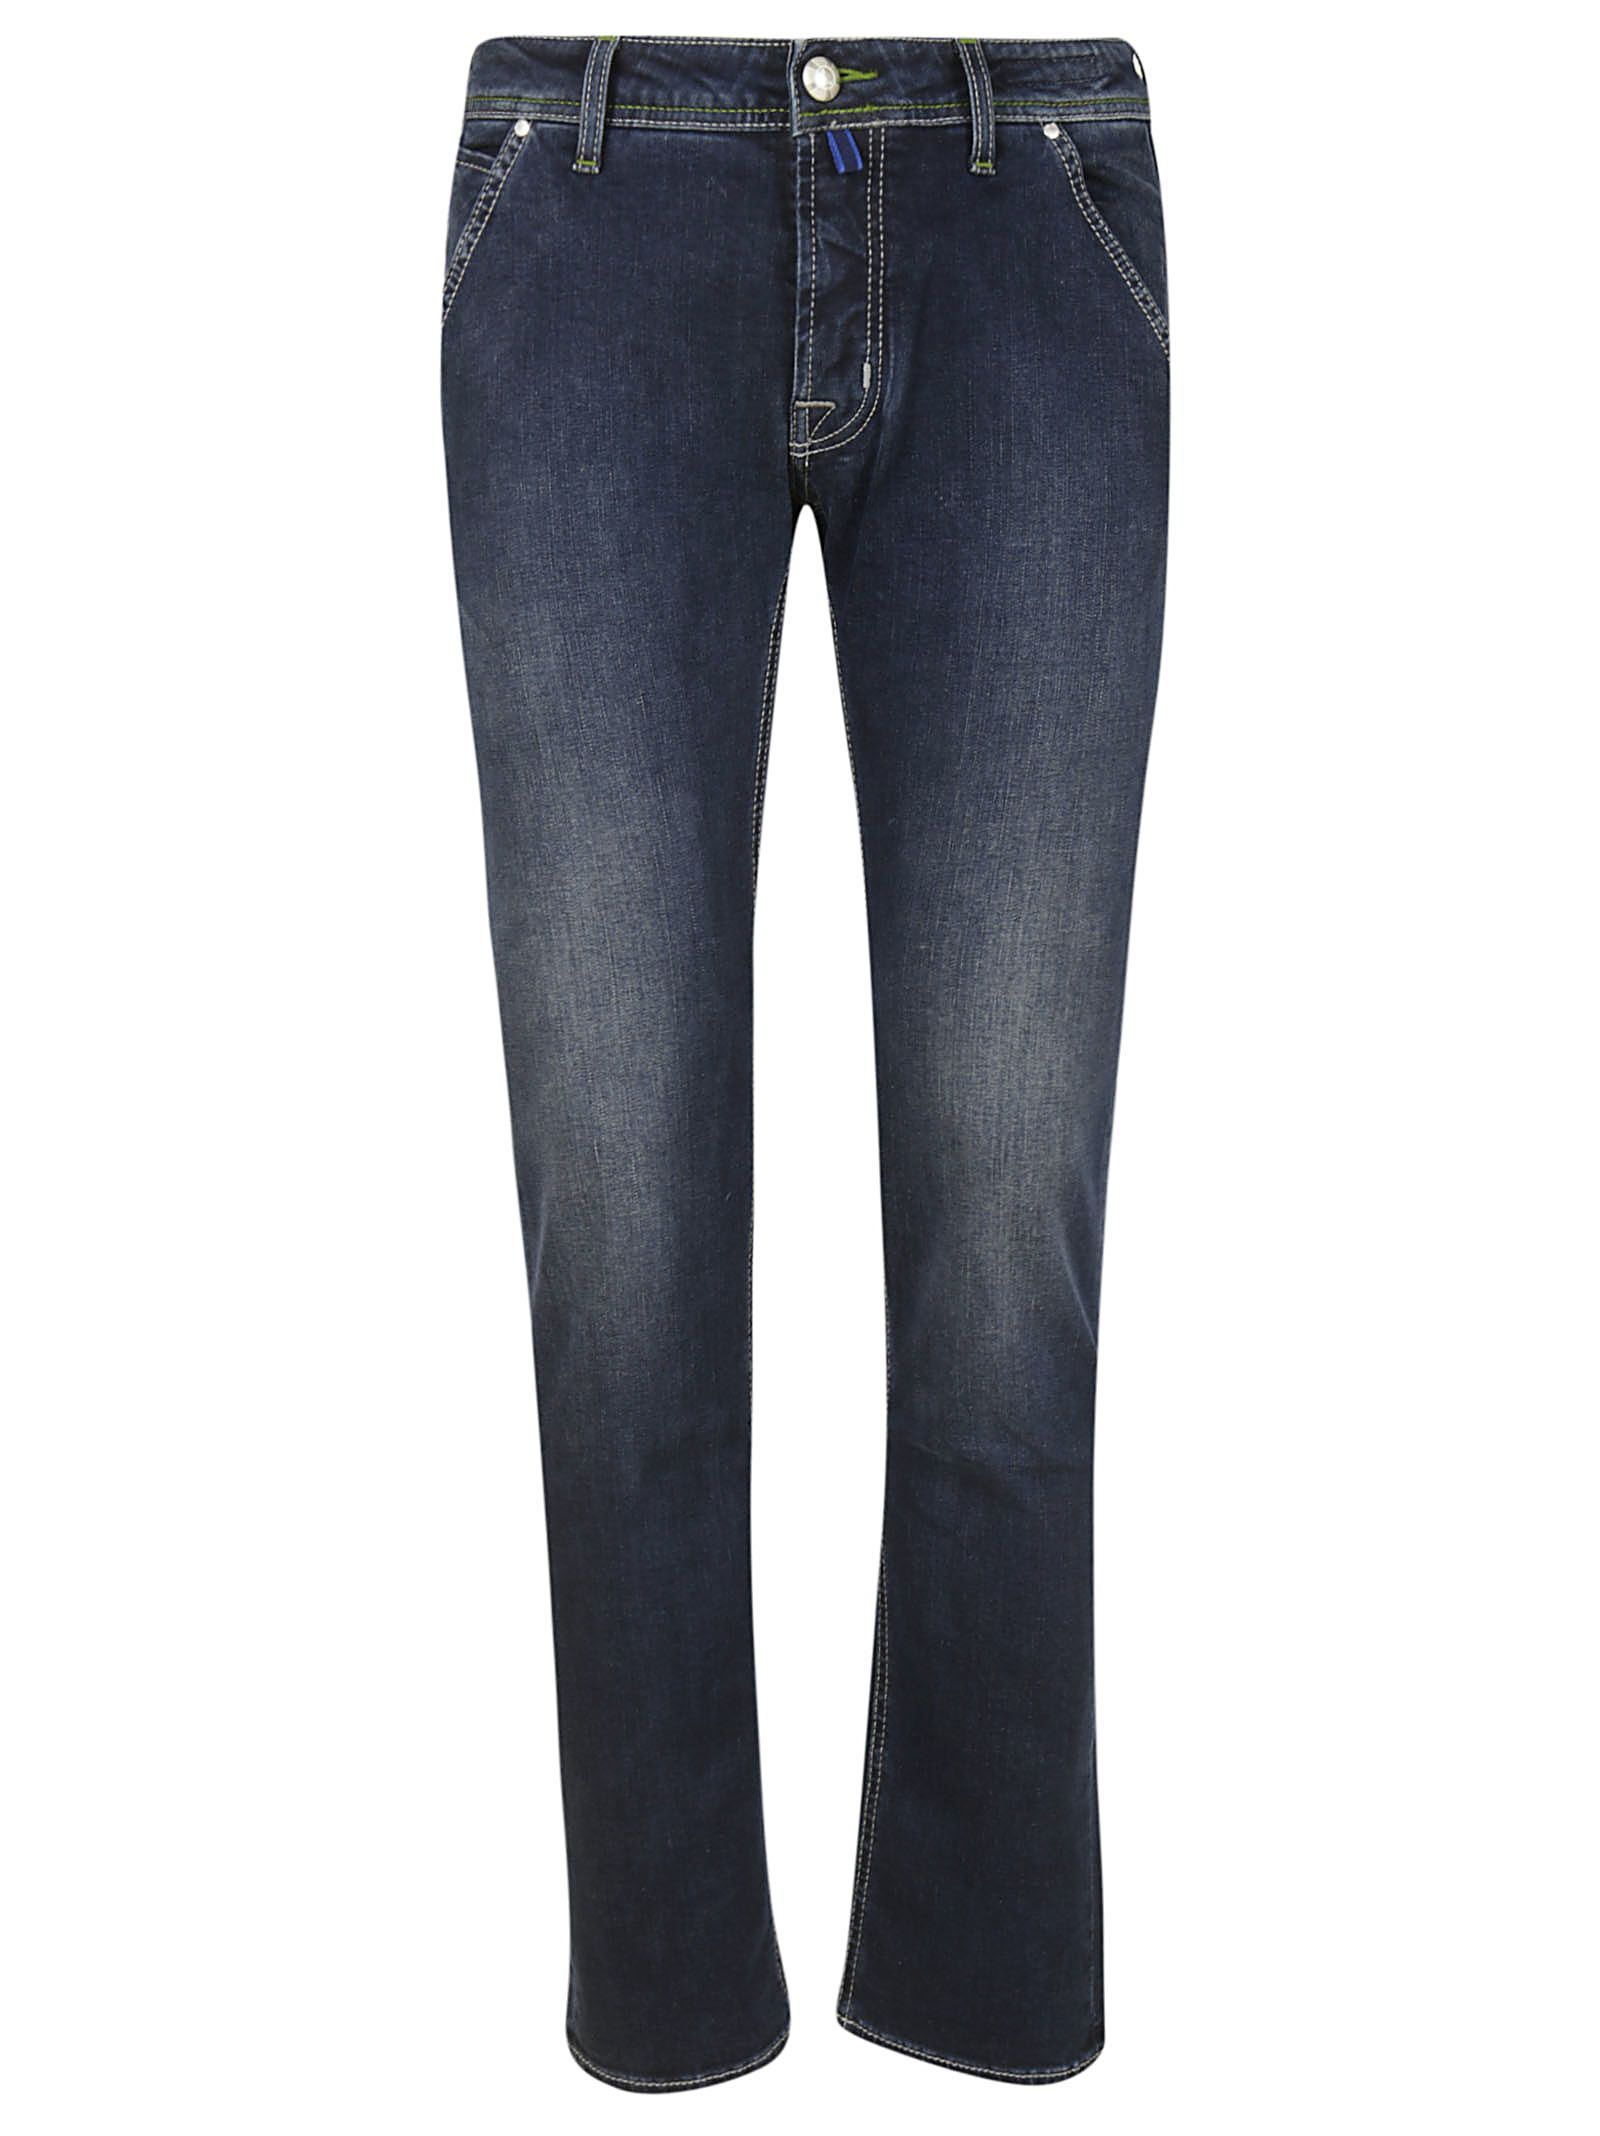 Jacob Cohen Five Pocket Jeans